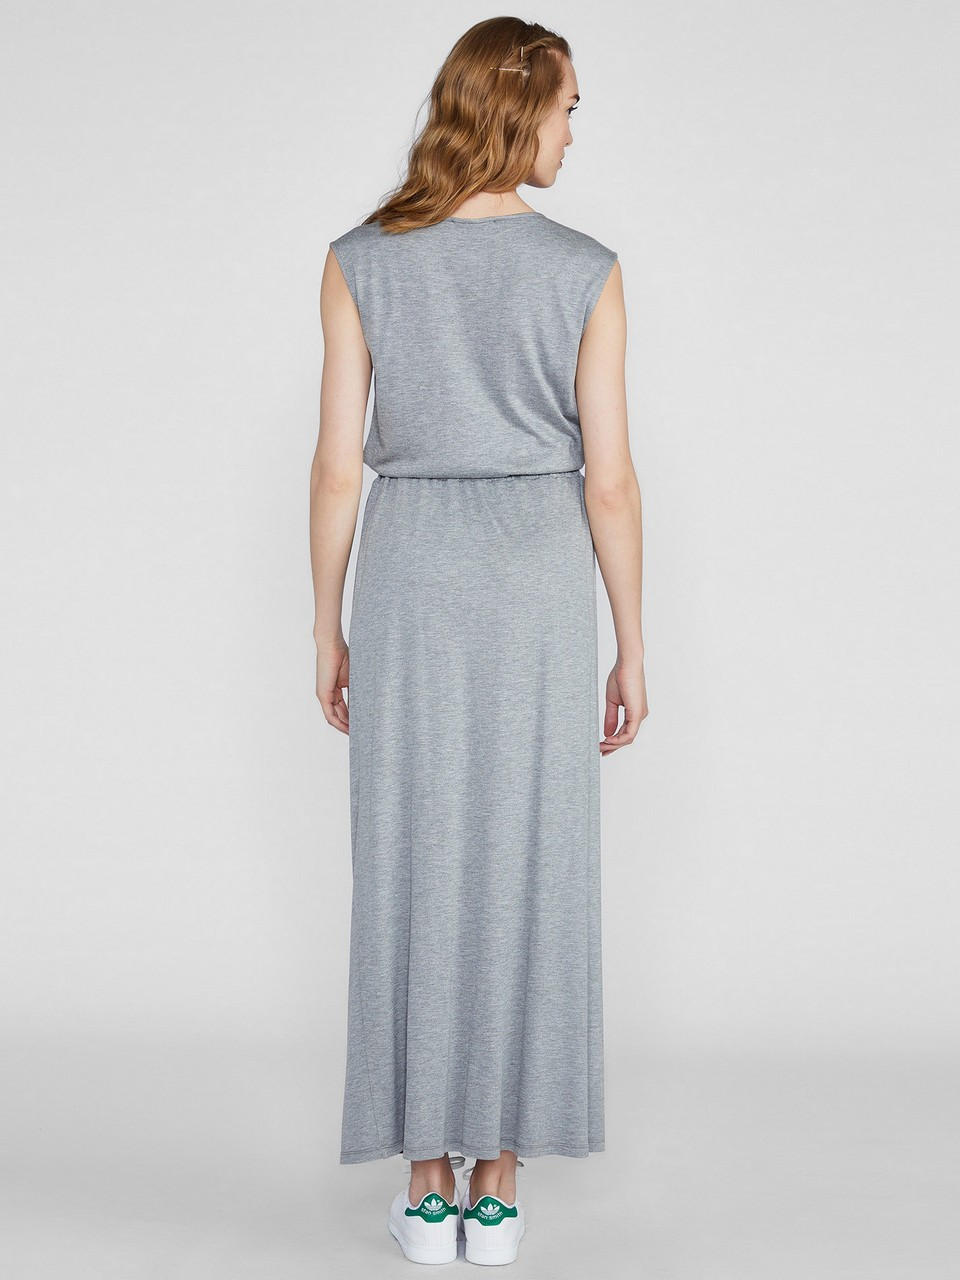 Sleeveless Dress With Elastic Waist